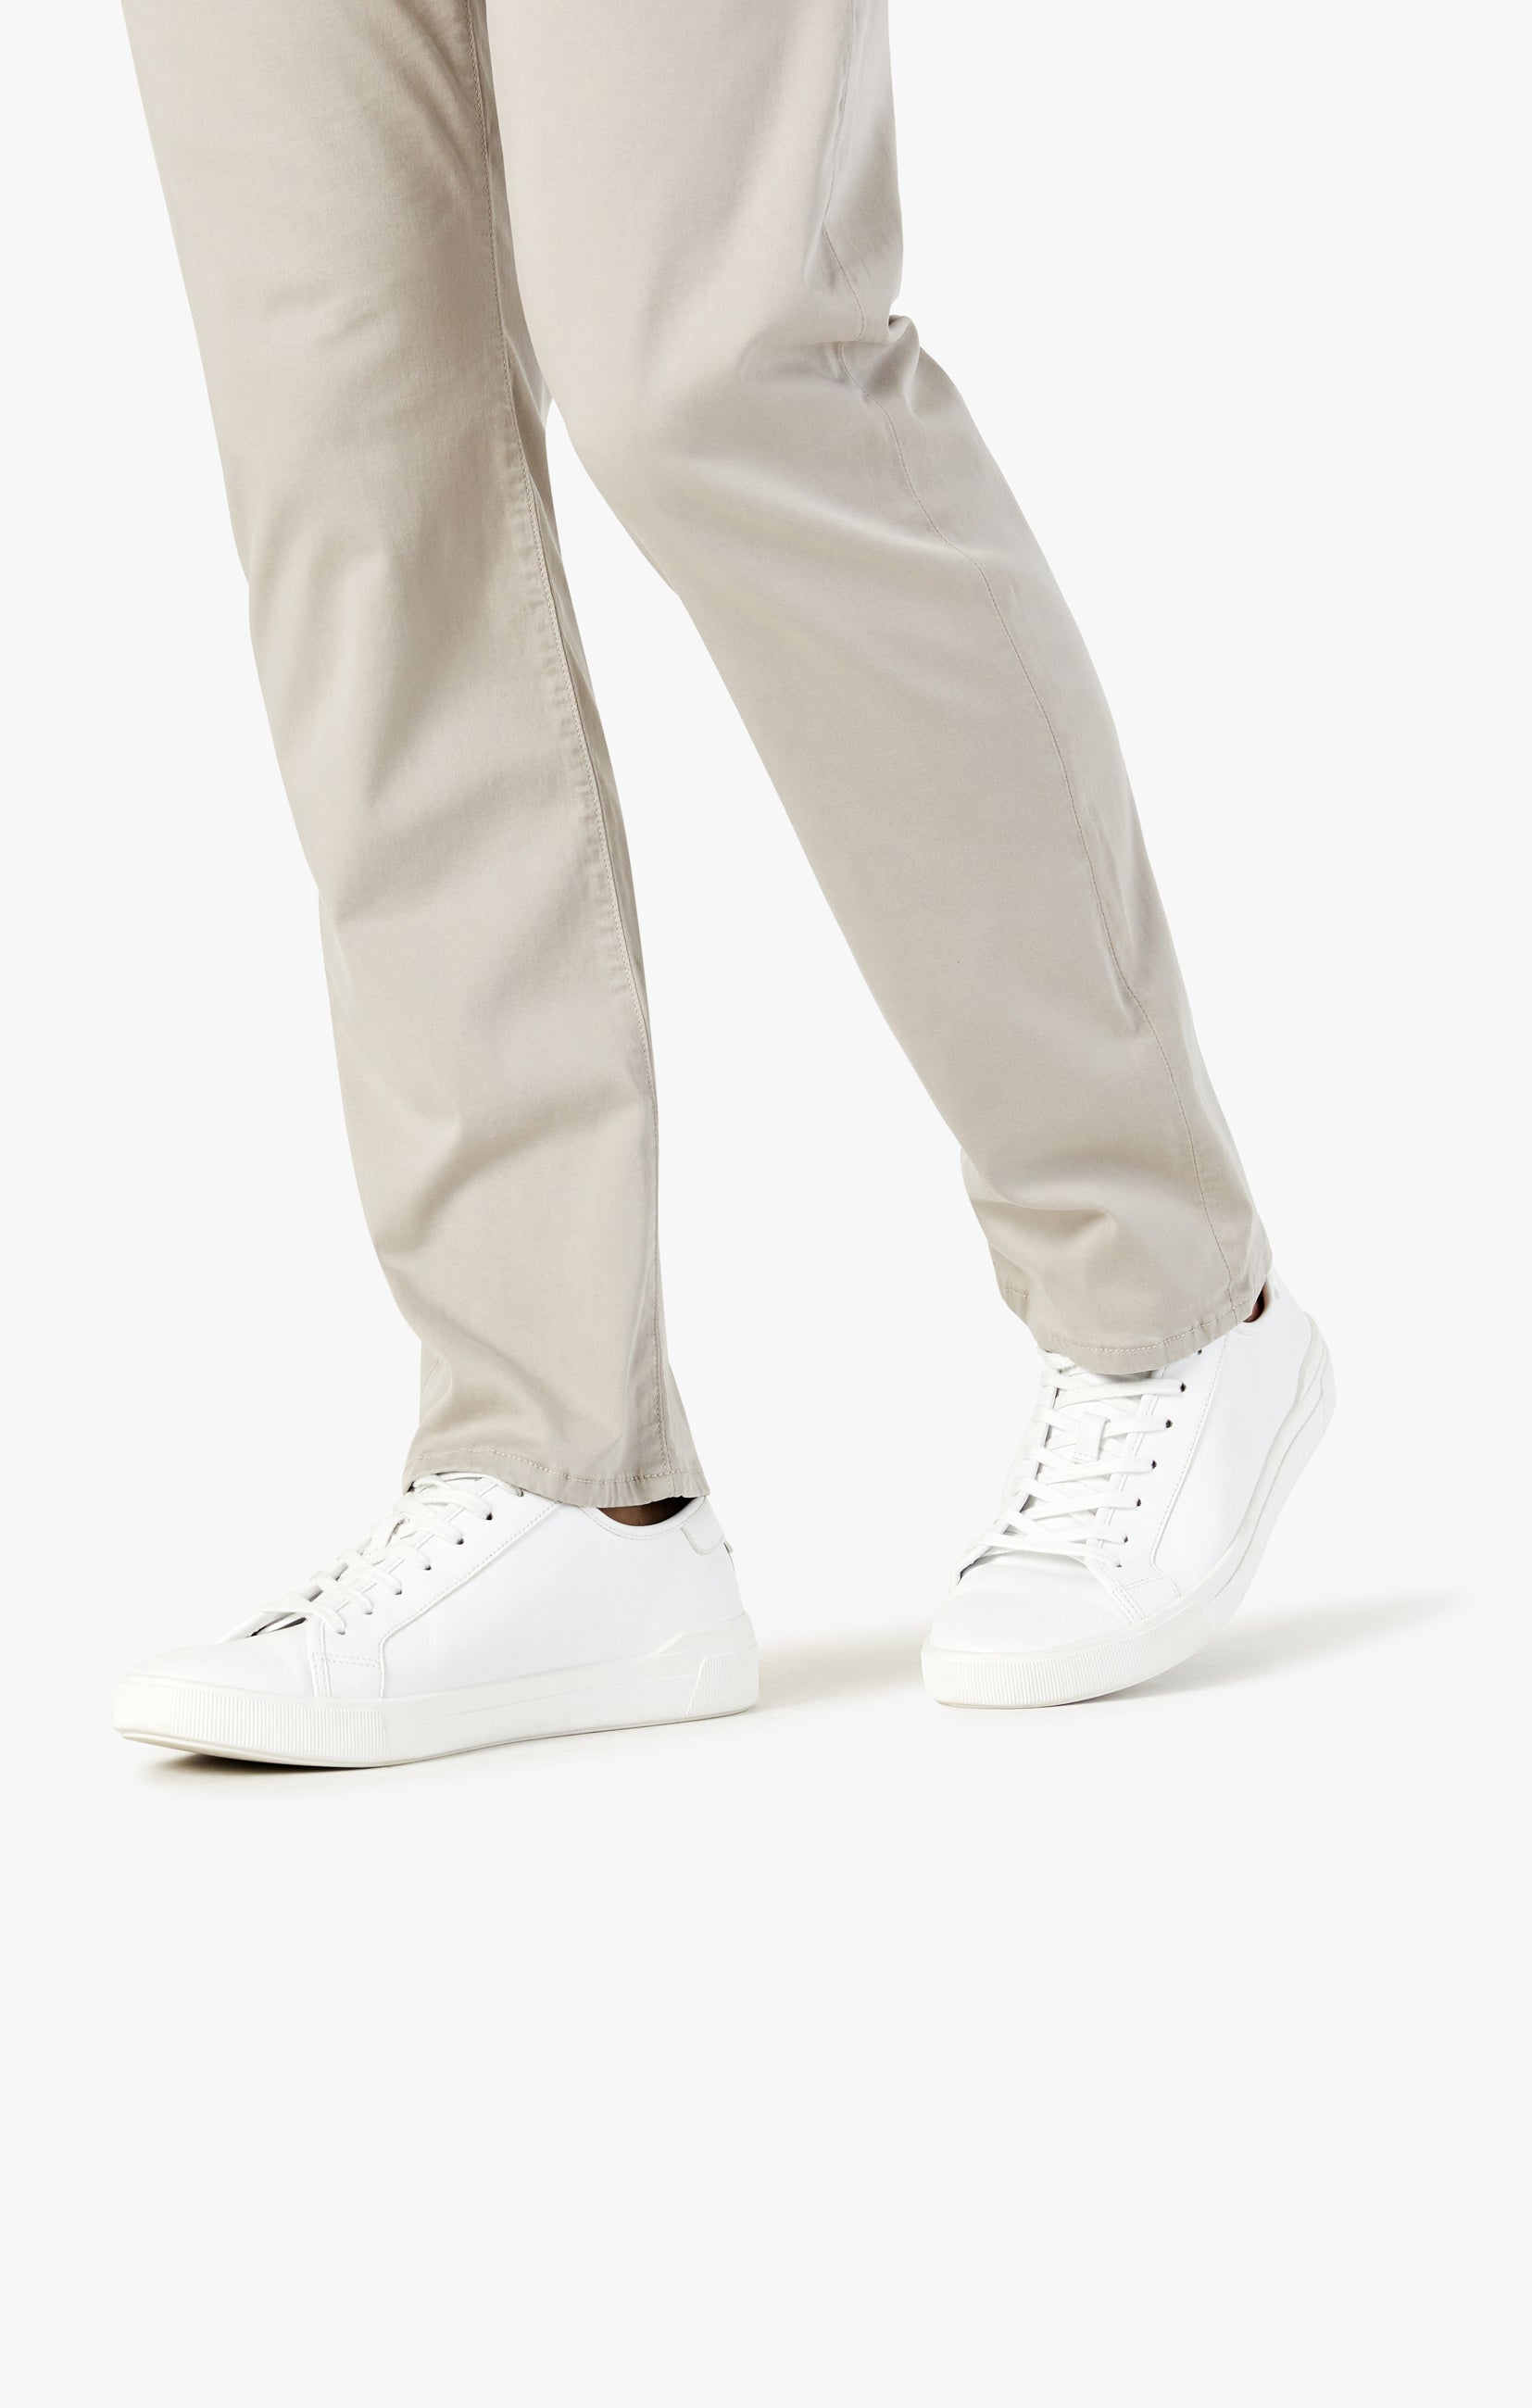 Courage Straight Leg Pants In Dawn Twill Image 7